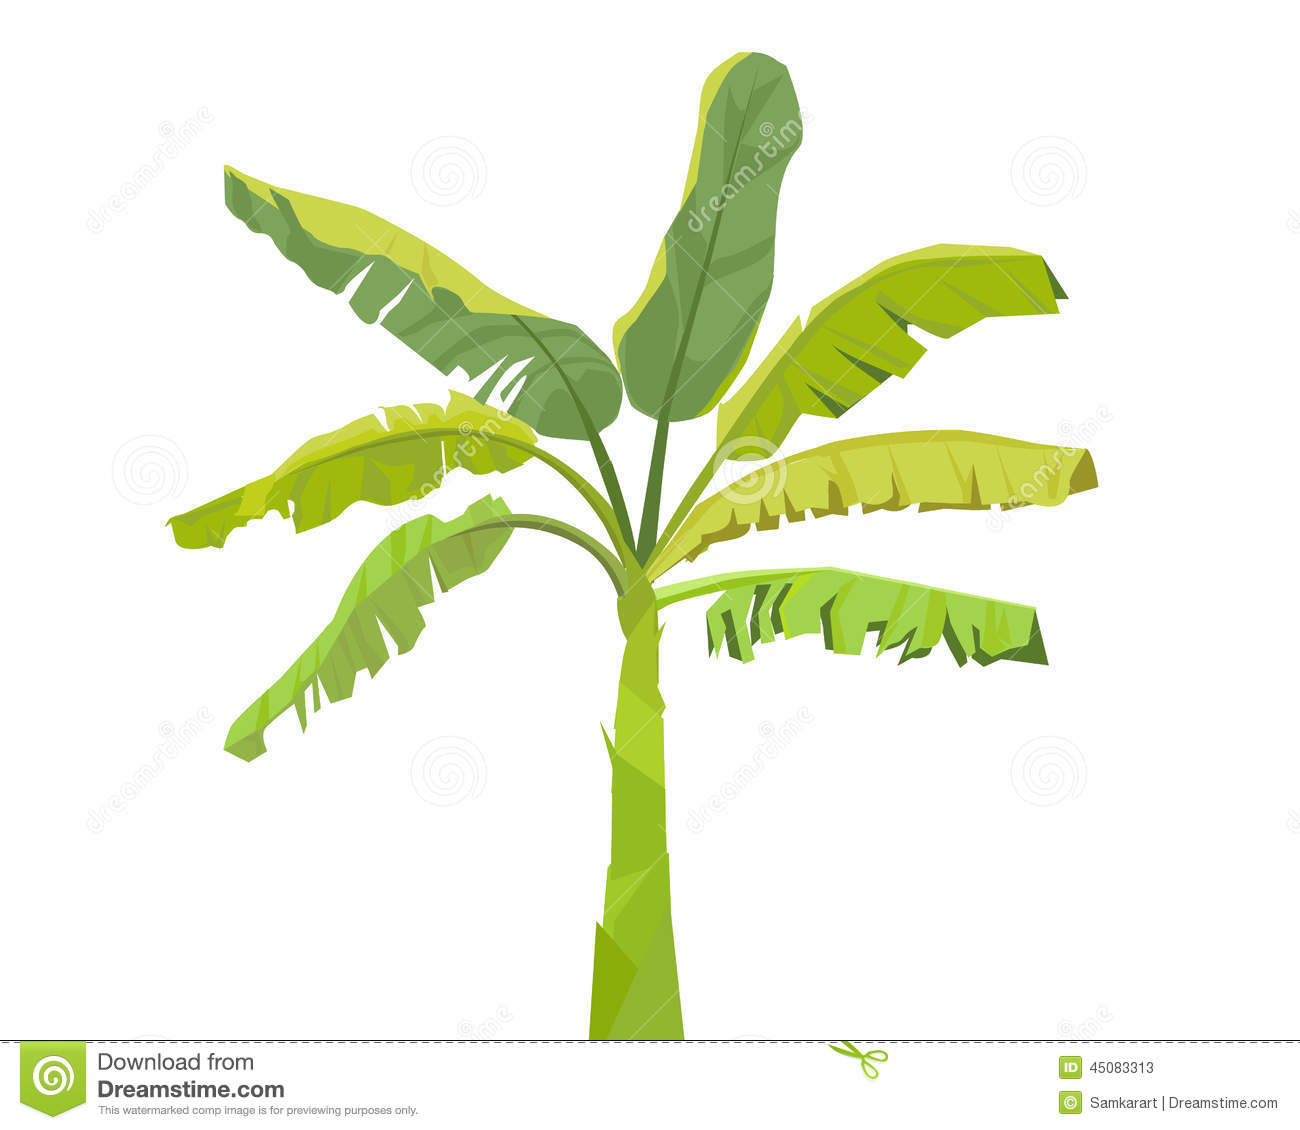 Banana Tree Stock Illustrations 21 624 Banana Tree Stock Illustrations Vectors Clipart Dreamstime